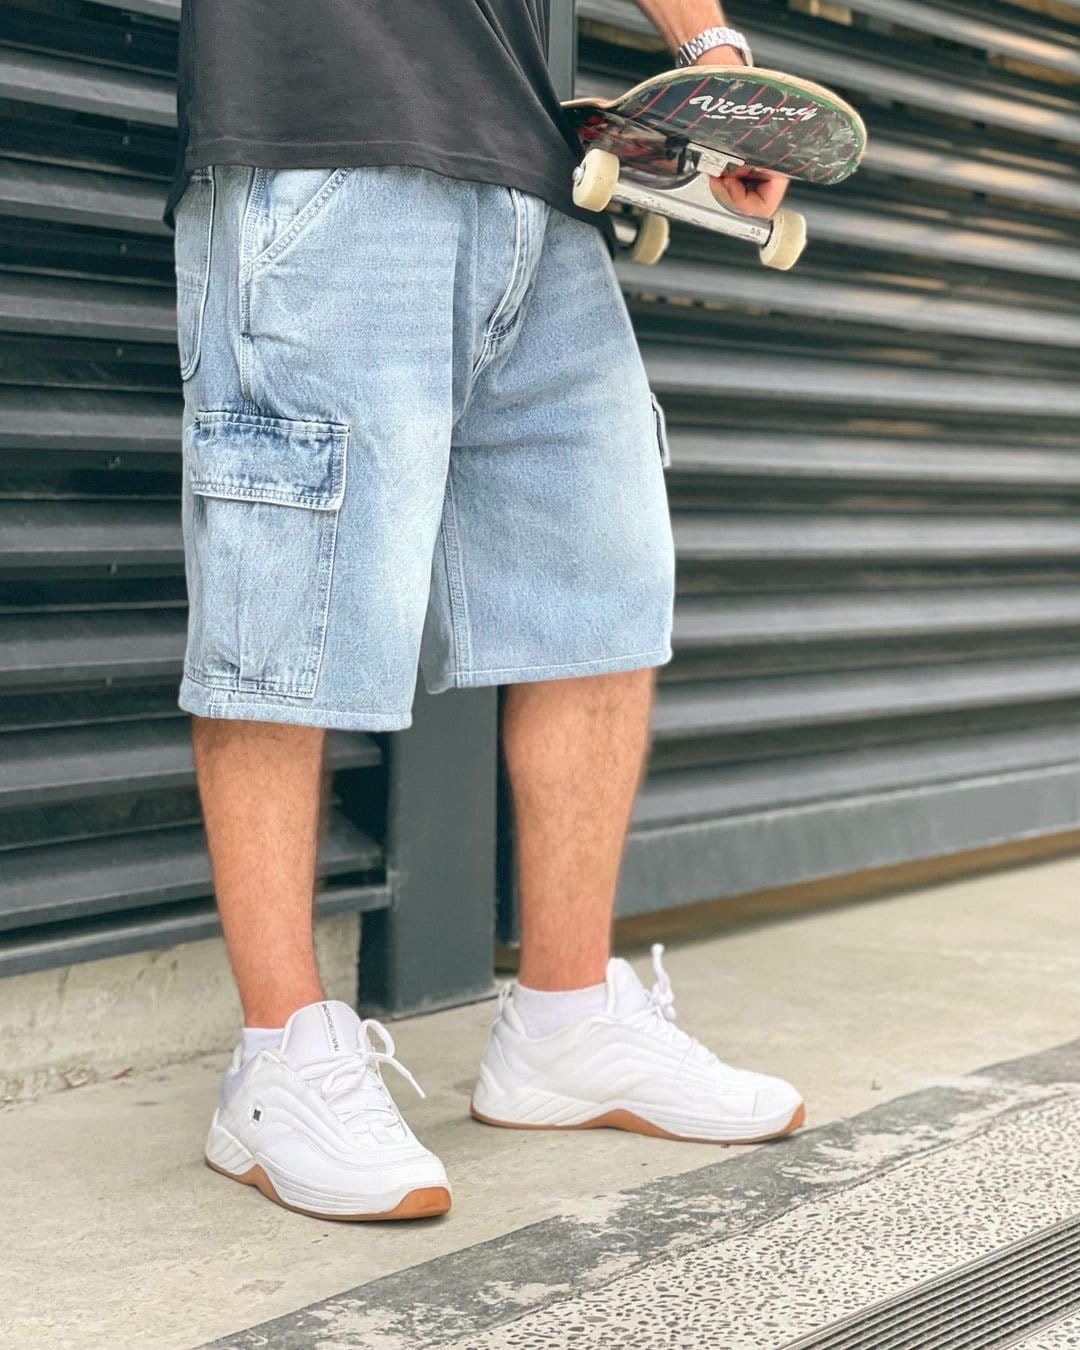 Premium quality cargo denim jean shorts by New Zealand skate and streetwear clothing label VIC Apparel. Loose fit. Featuring utility pockets and triple needle contrast stitching with VIC label flag at the back right pocket. Classic vintage workwear style.